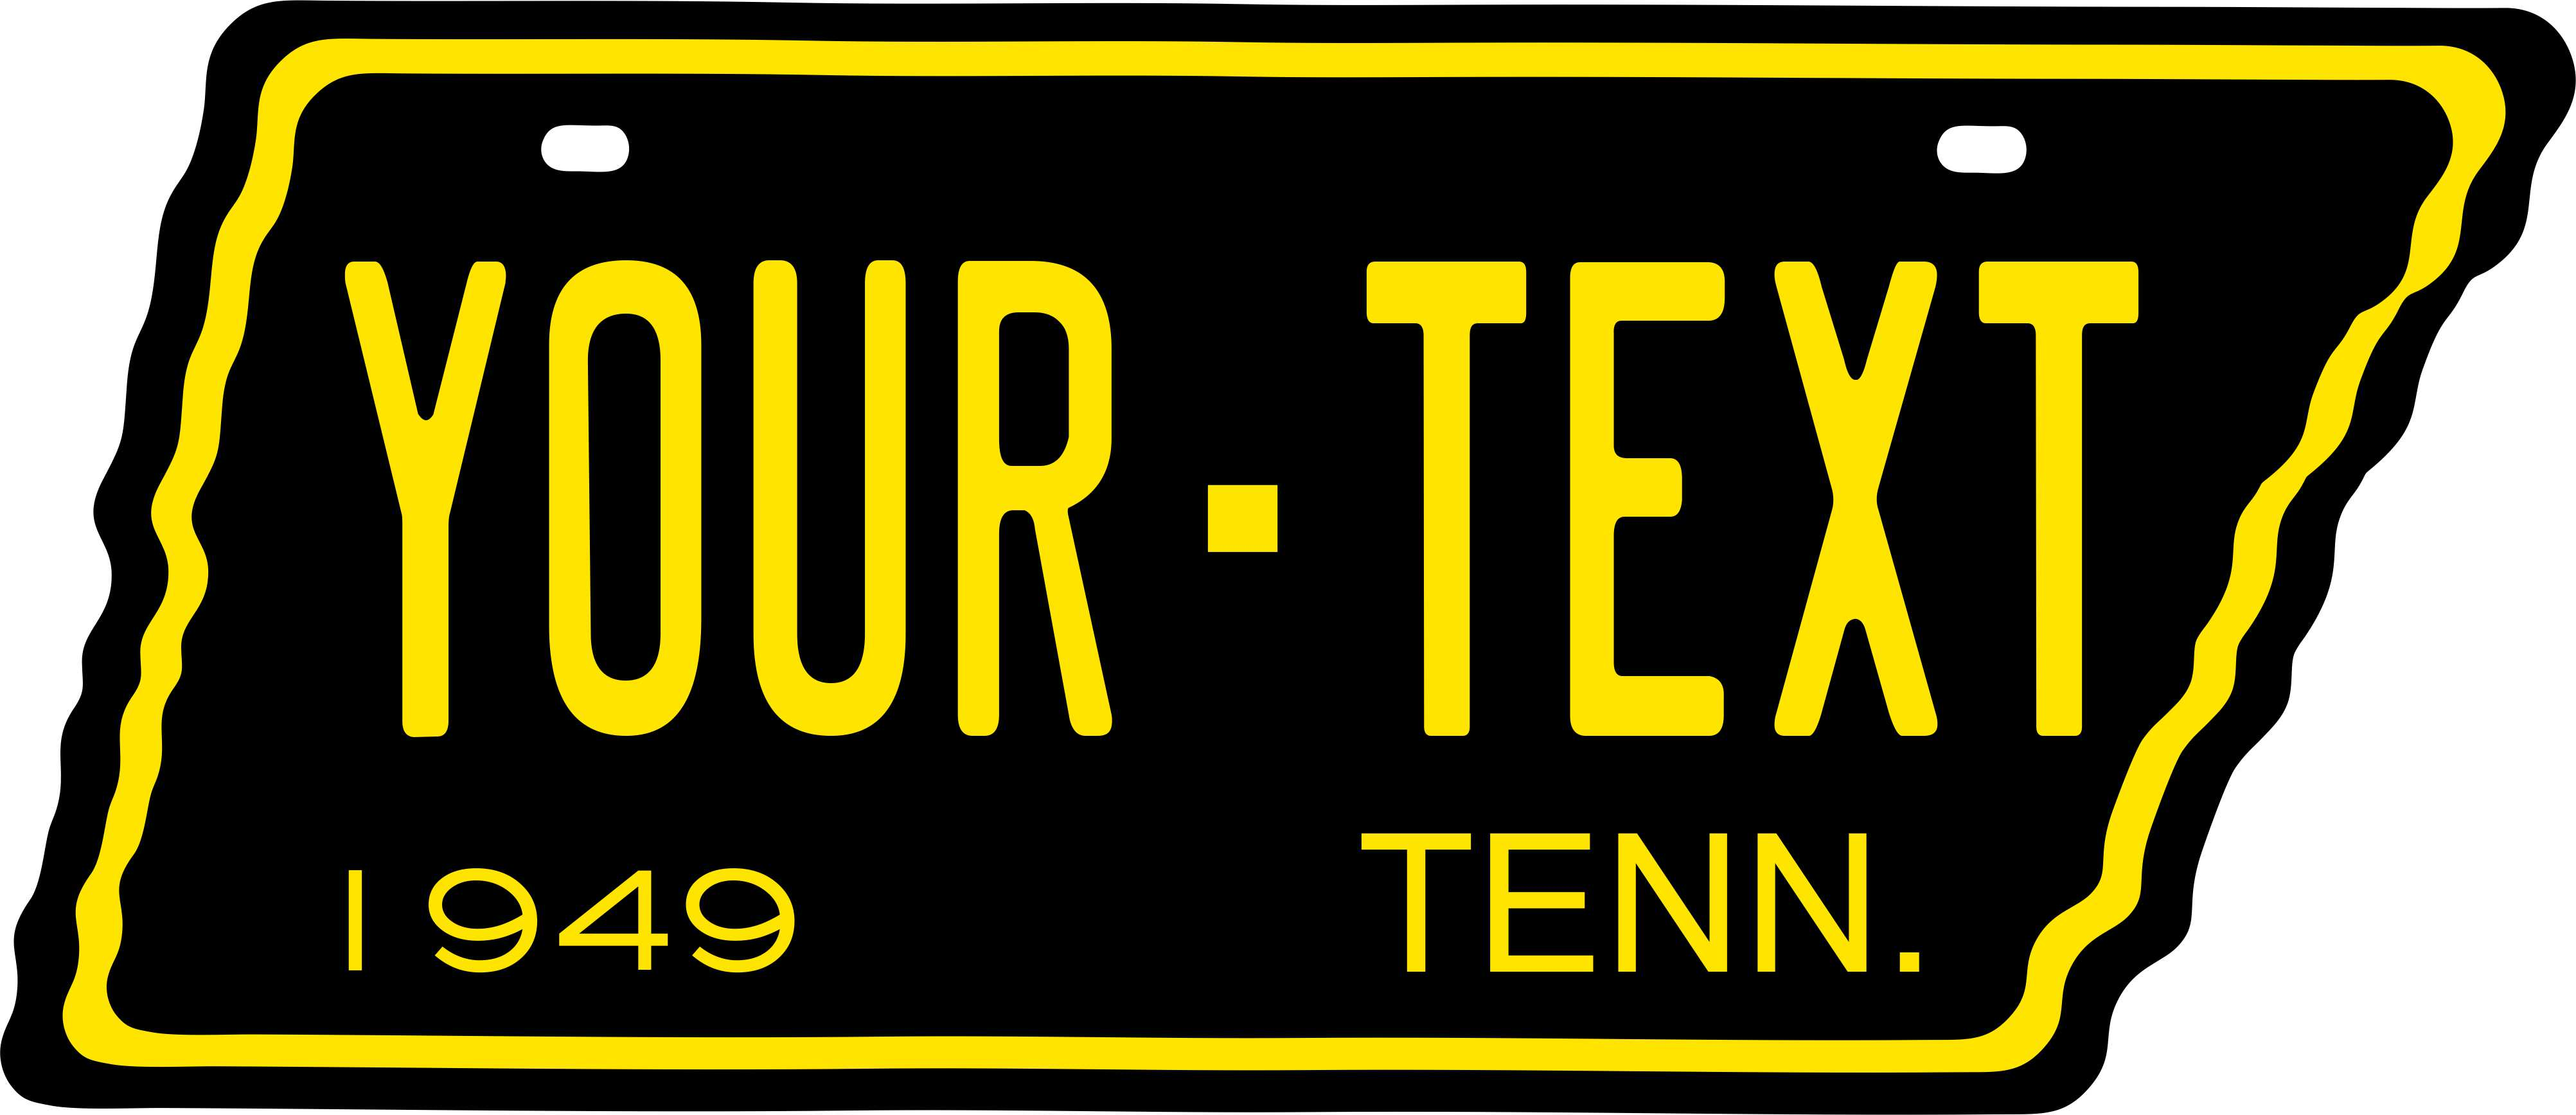 Tennessee 1949 Tag Custom Personalize Novelty Vehicle Car Auto ...